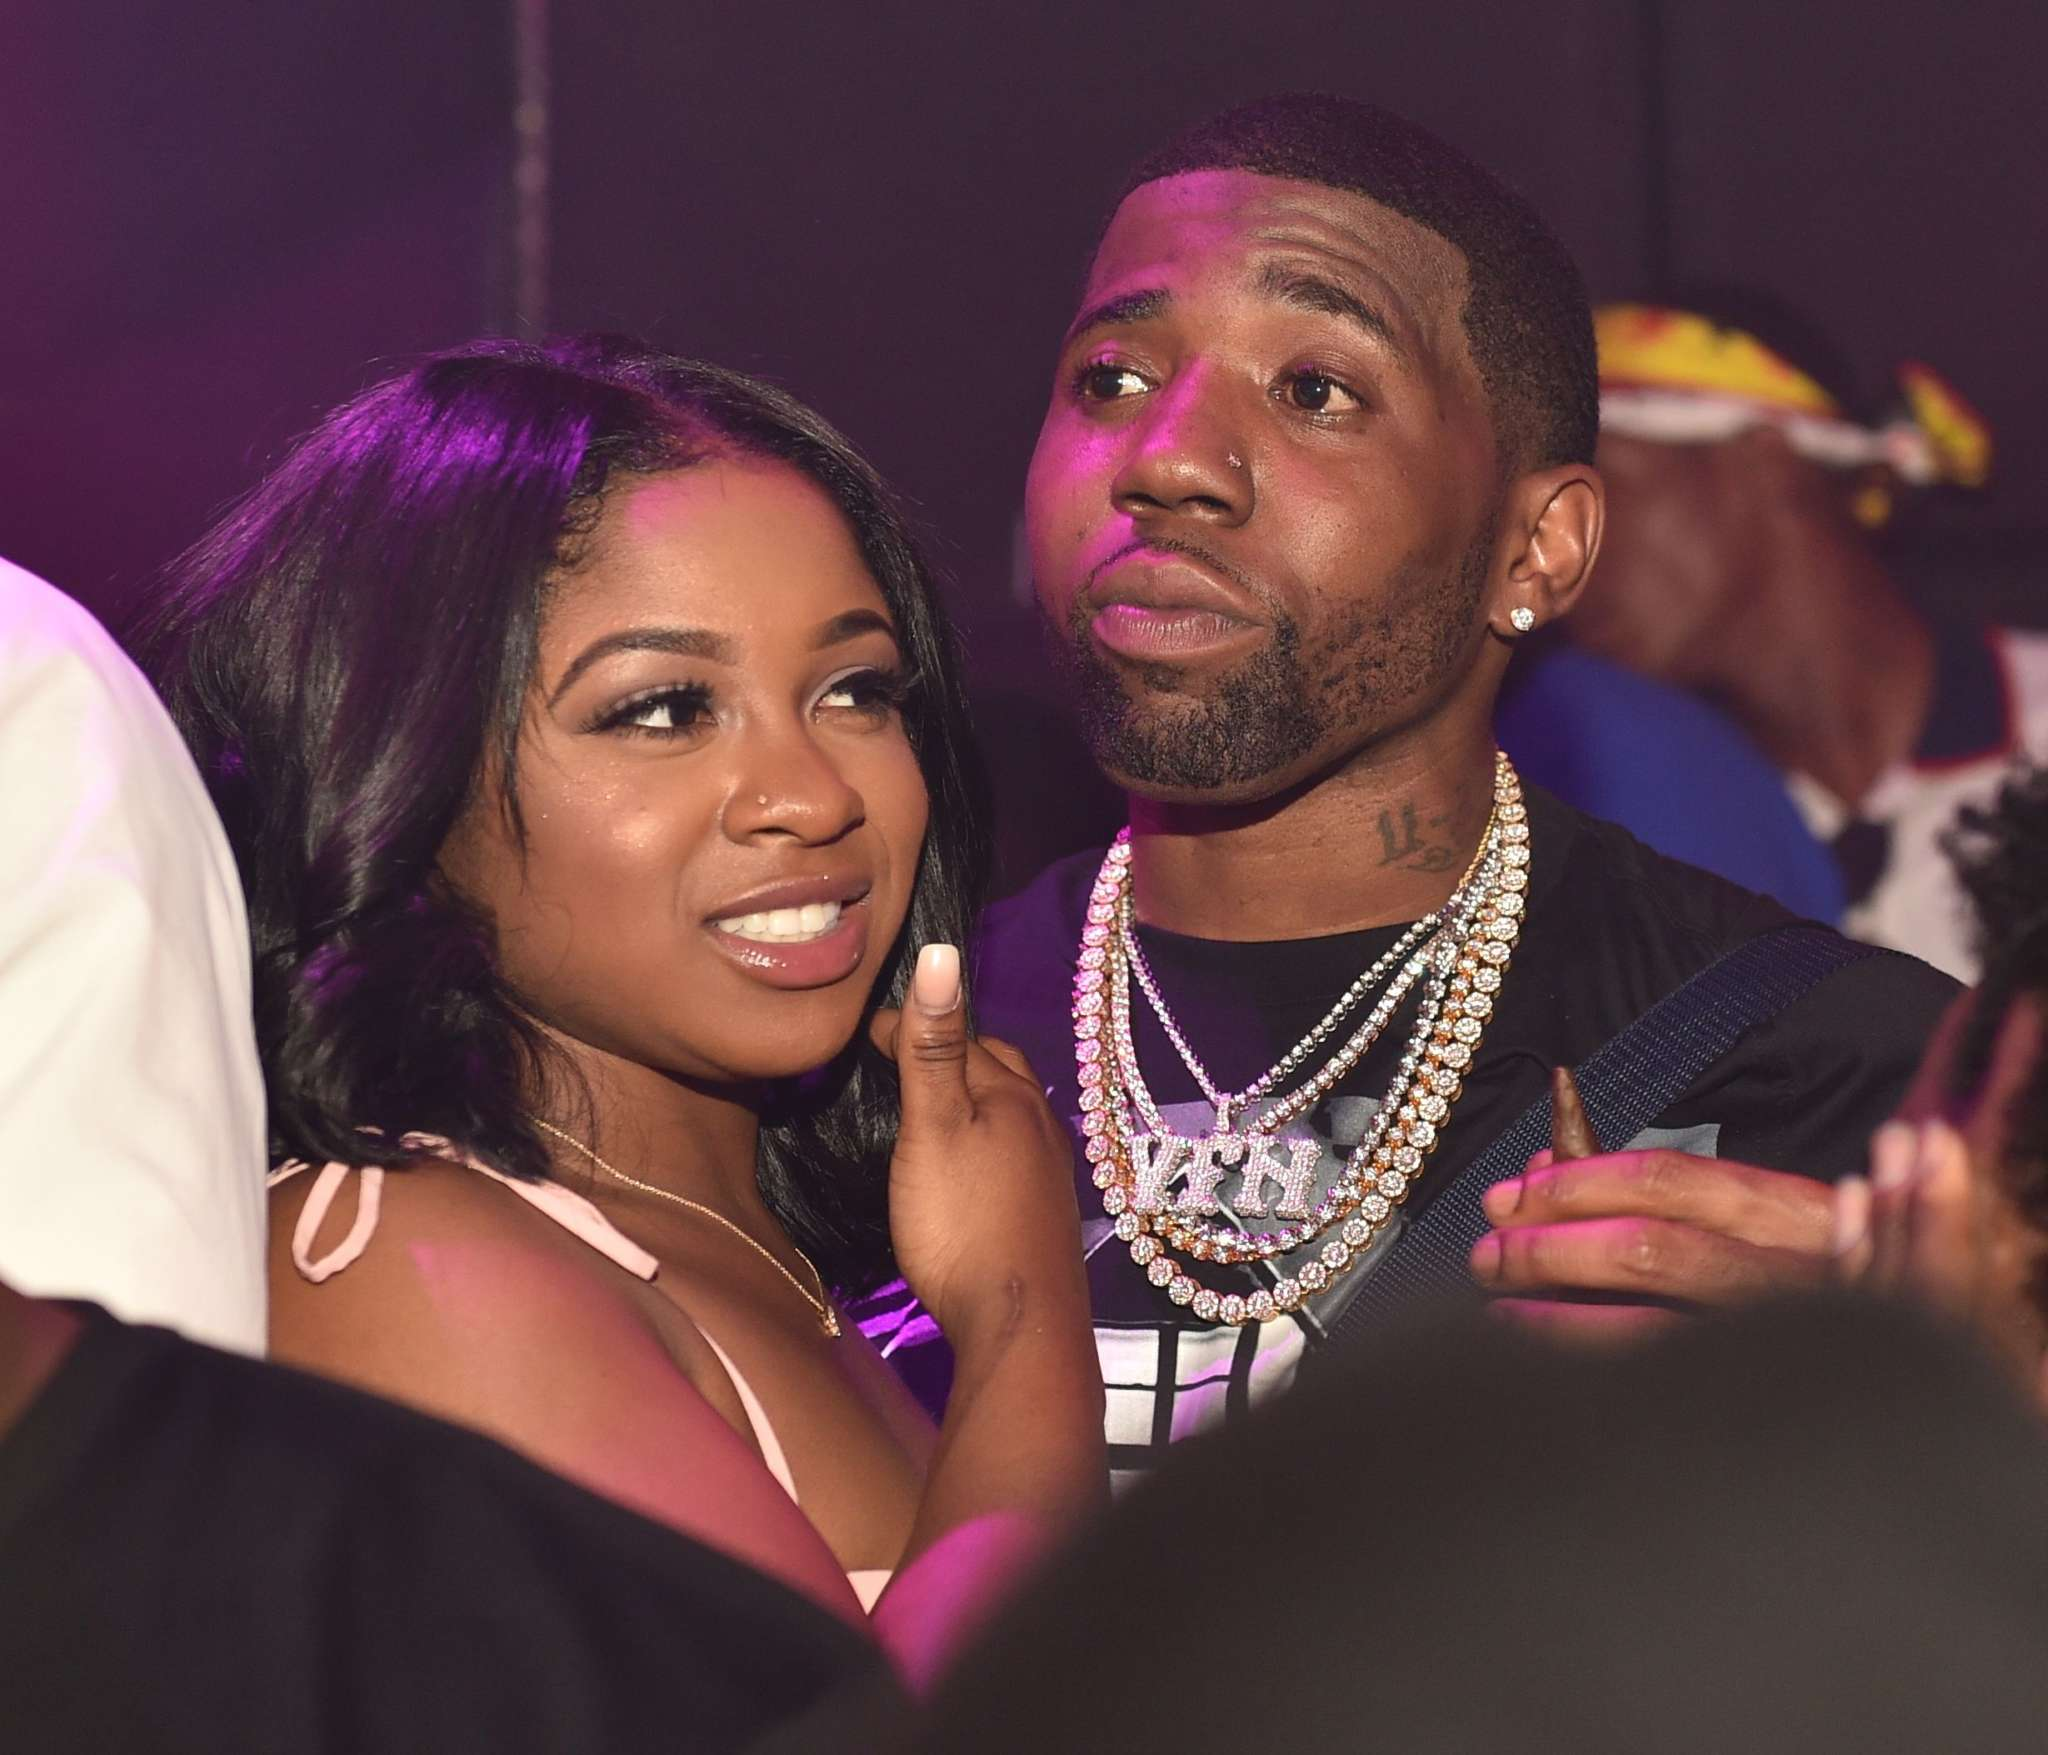 reginae-carter-responds-to-critics-dragging-her-romance-with-yfn-lucci